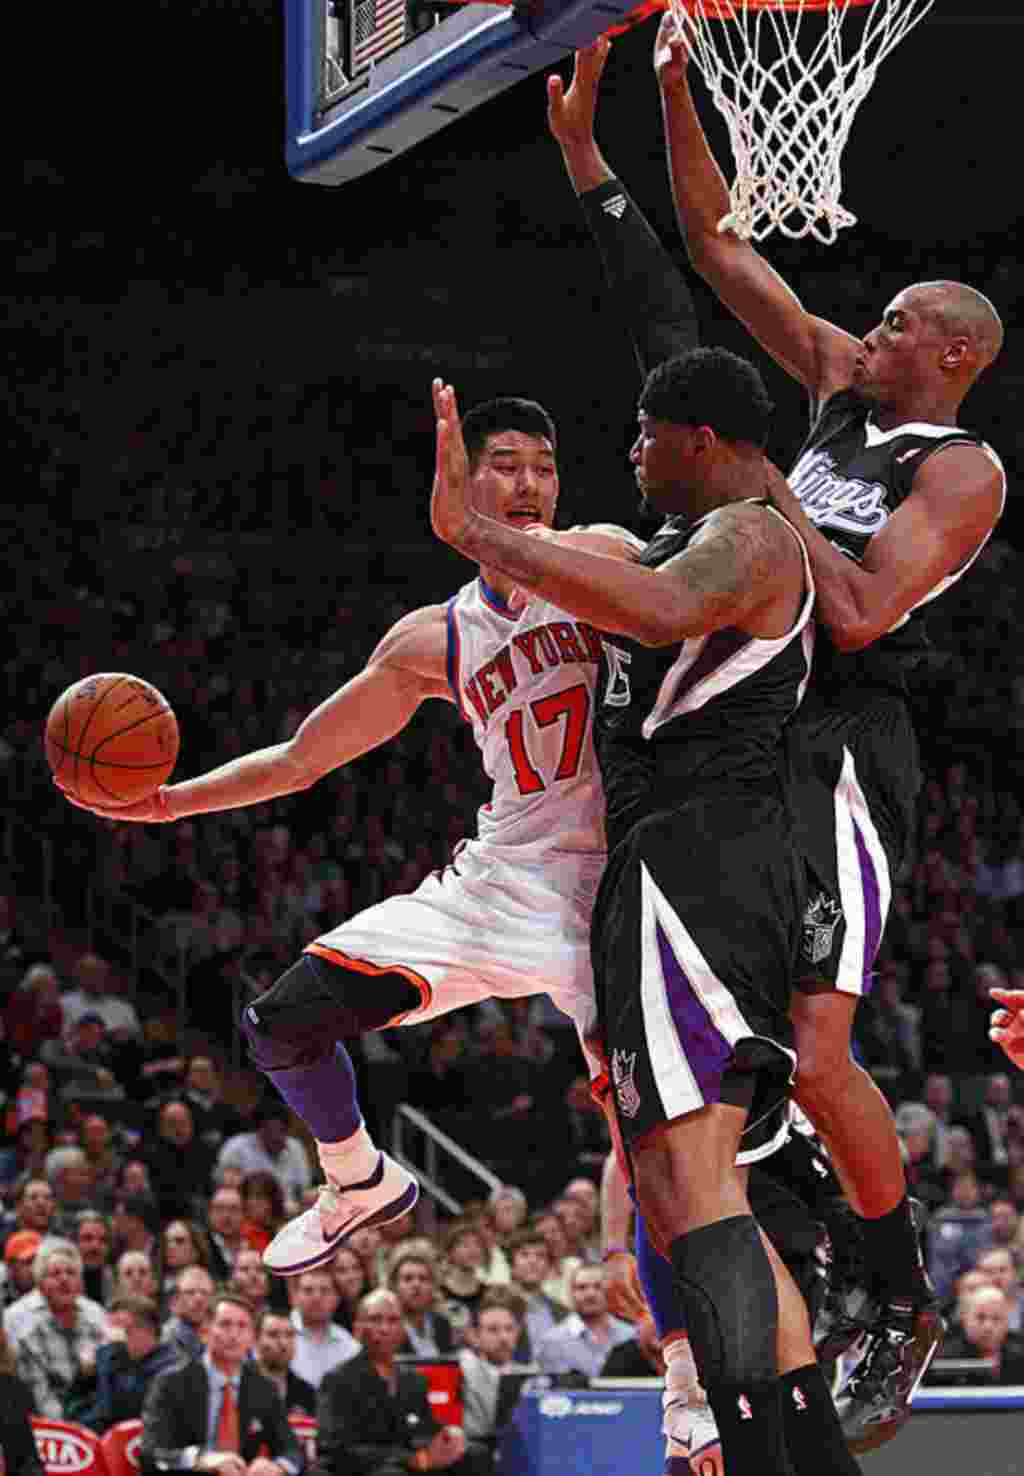 New York Knicks' Jeremy Lin passes away from Sacramento Kings' DeMarcus Cousins, center, and Travis Outlaw, right, during the first half of an NBA basketball game, February 15, 2012, in New York. (AP)